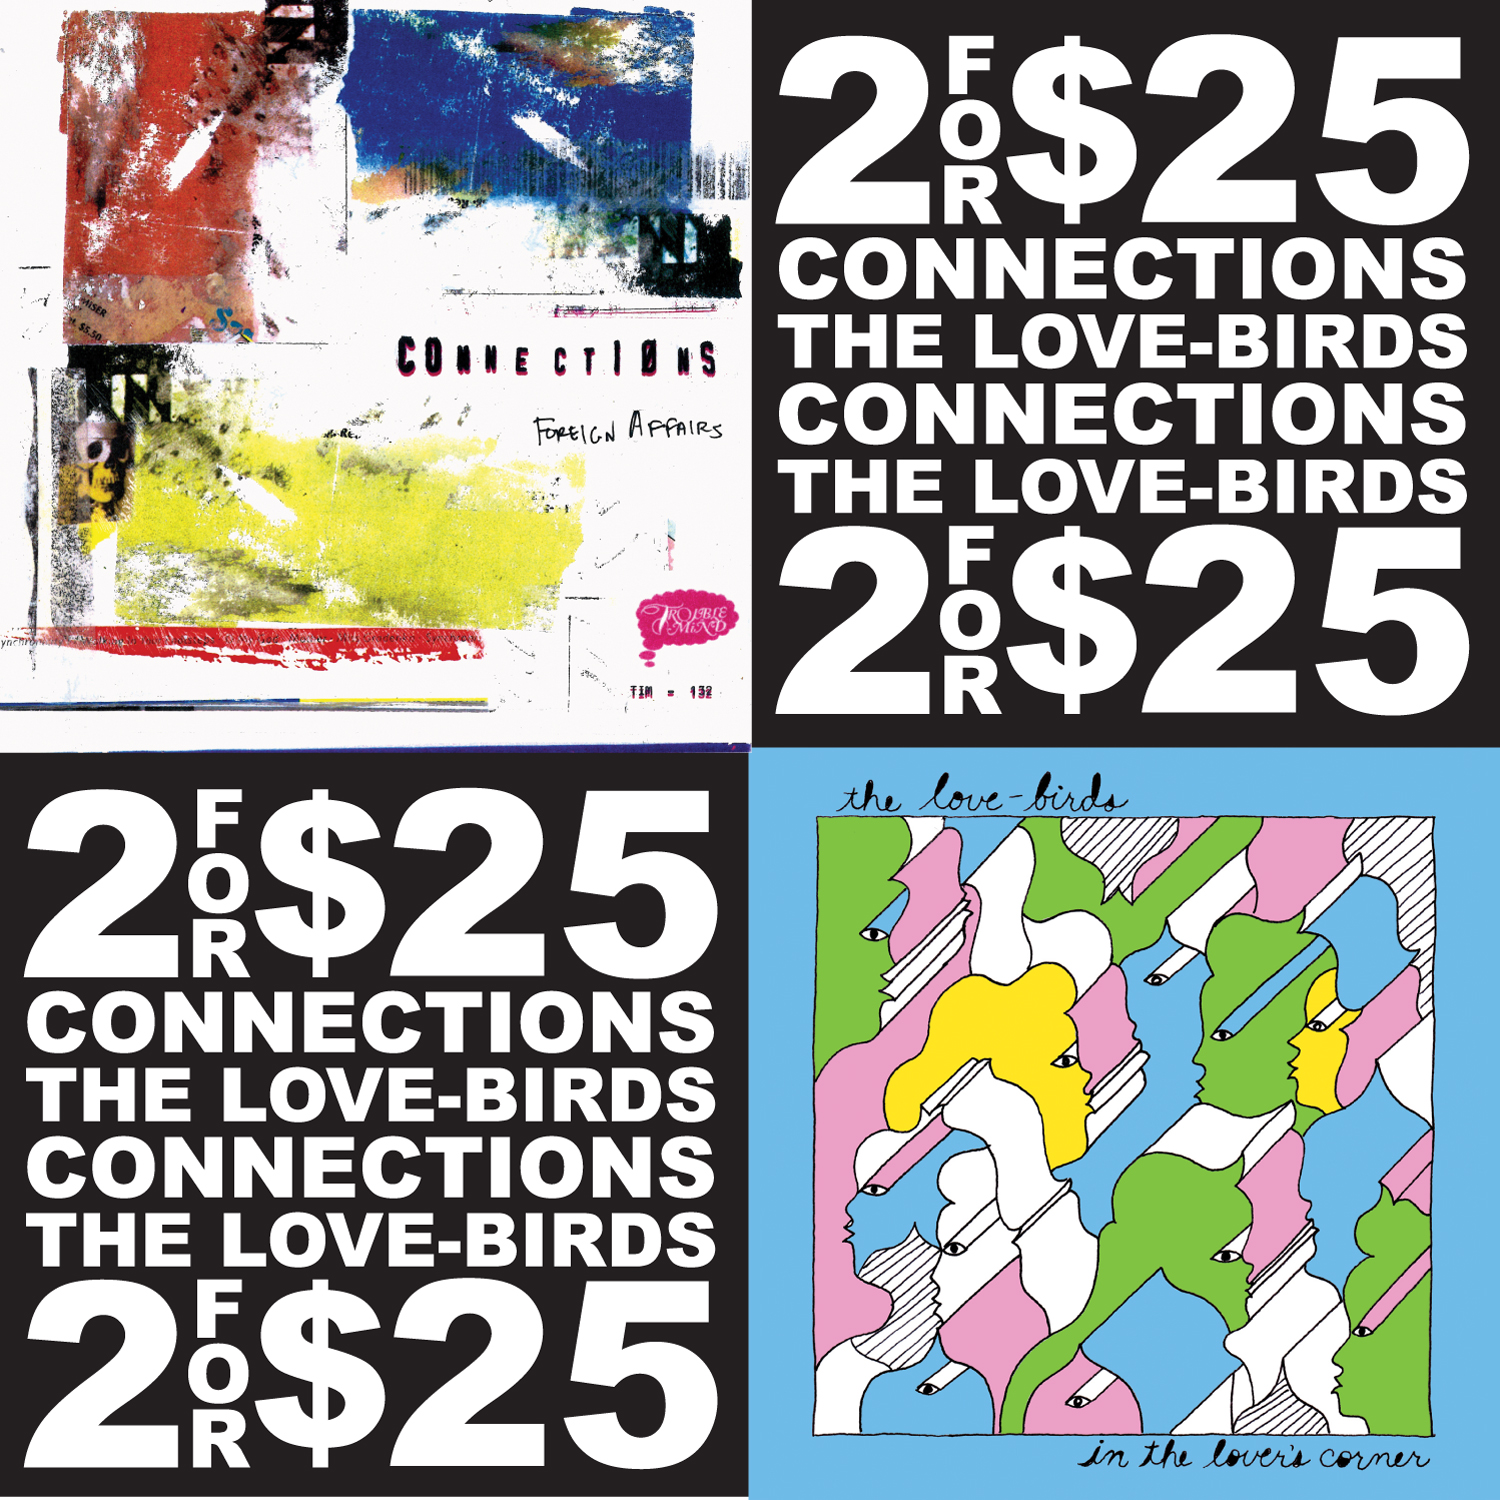 connections-love-birds-2for25-square.jpg